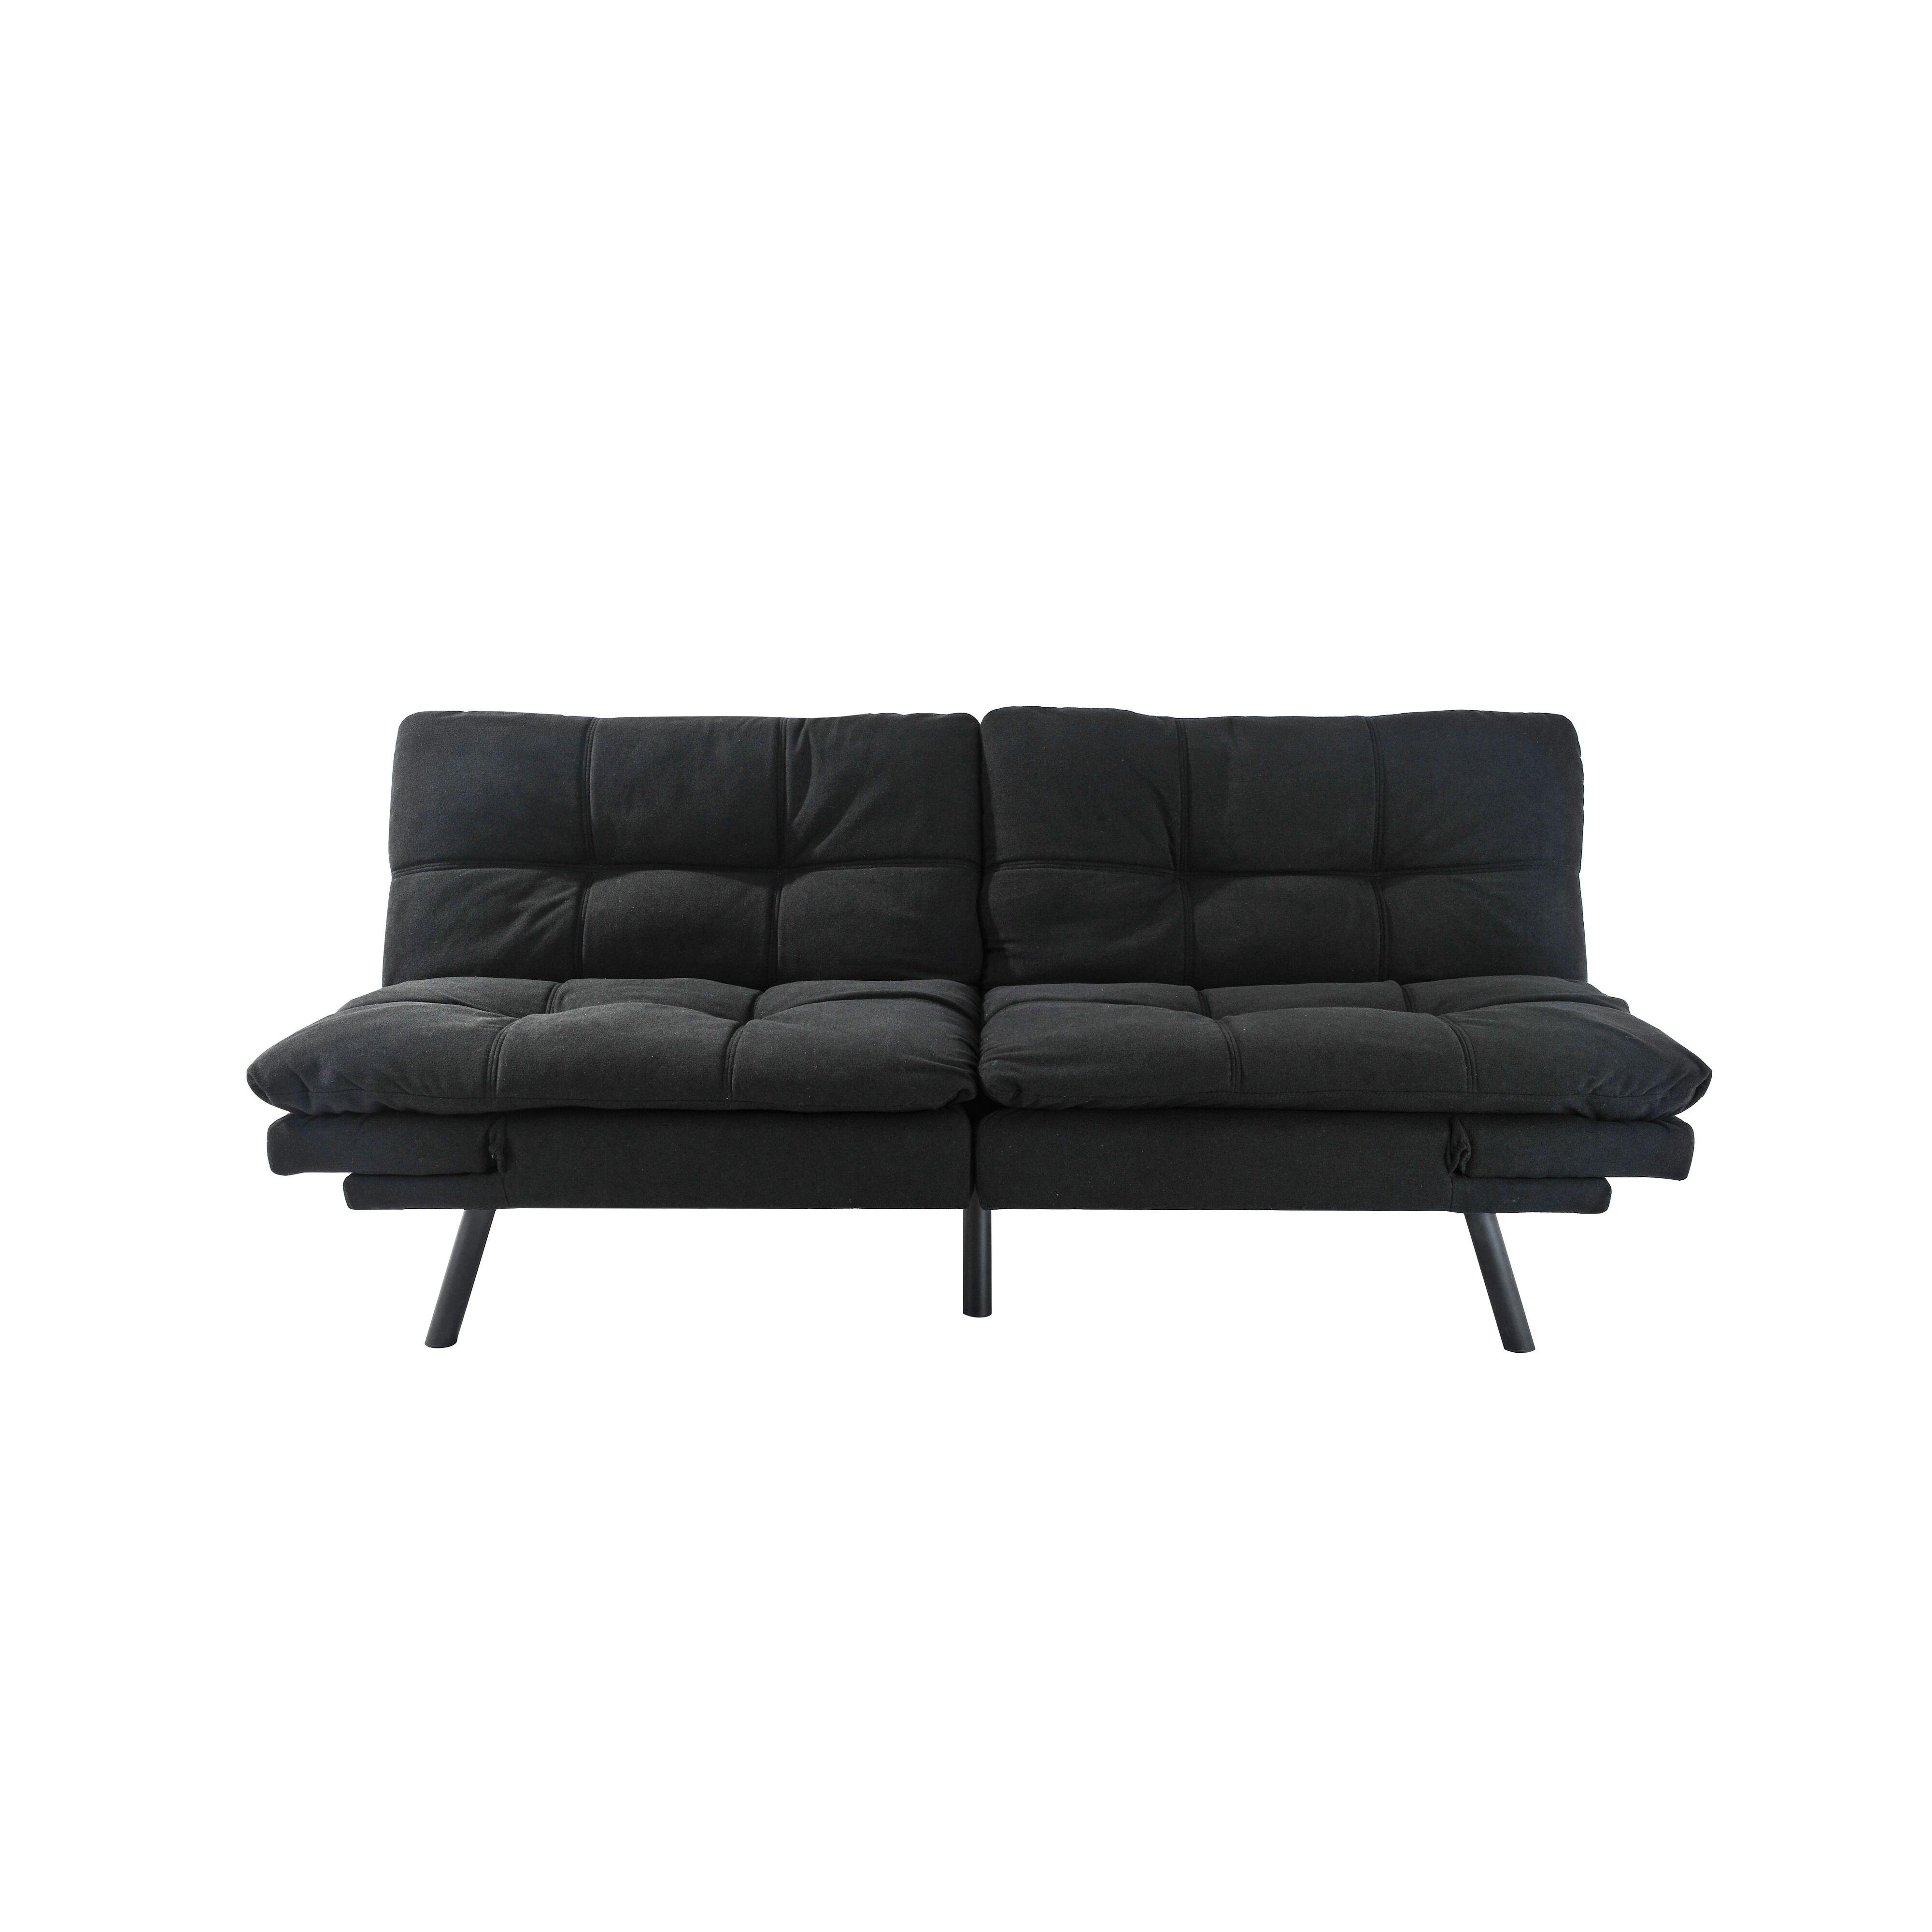 Boyel Living 34.3 in. Black Cotton 2-Seater Full Sleeper Armless Sofa Bed